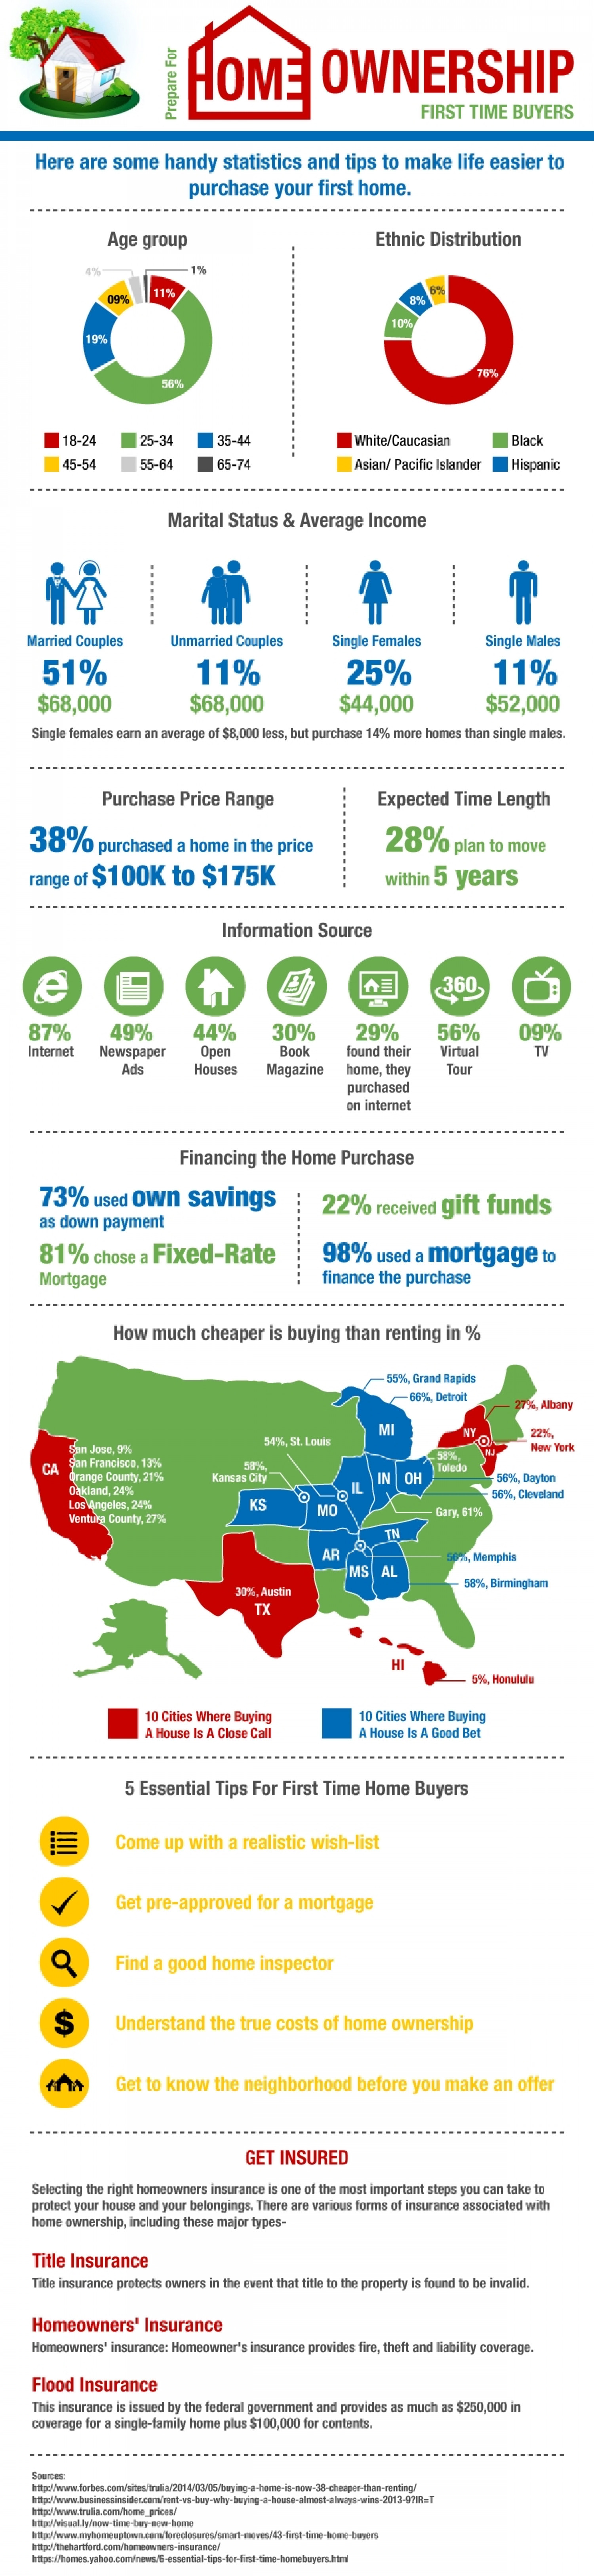 Prepare for Home Ownership First Time Buyers Infographic